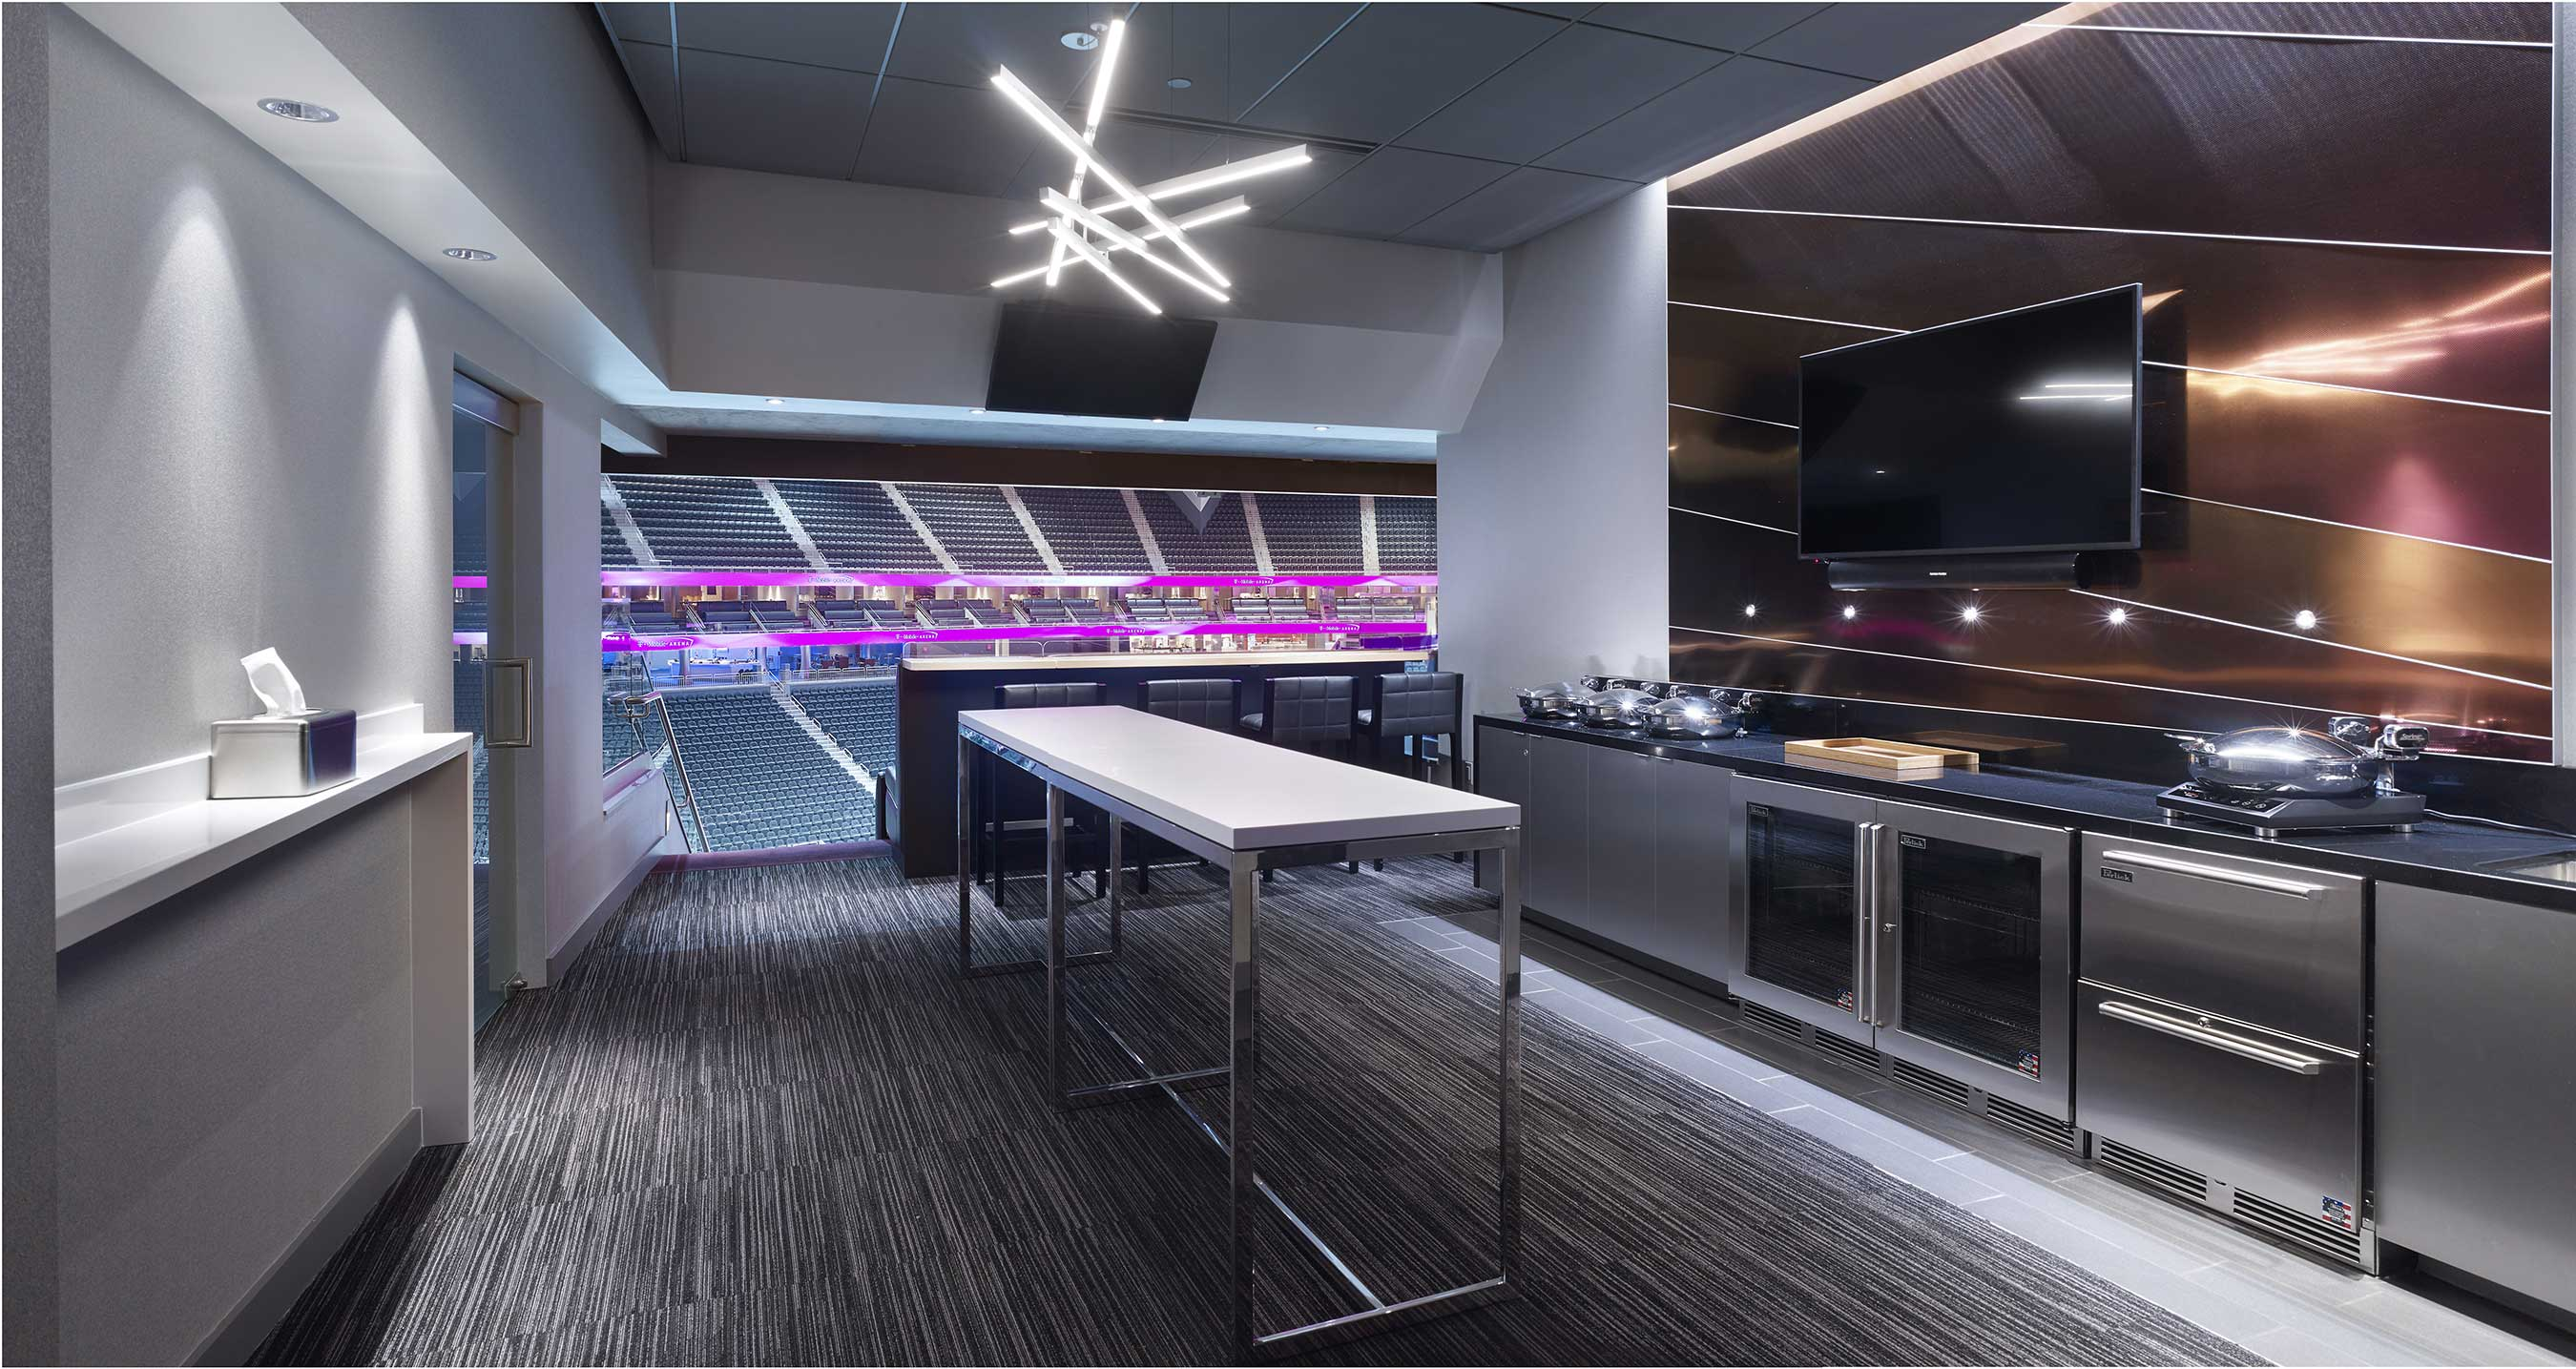 Forty-four loge boxes line the third level with seats for 16 guests, suite attendants and individual kitchenettes.